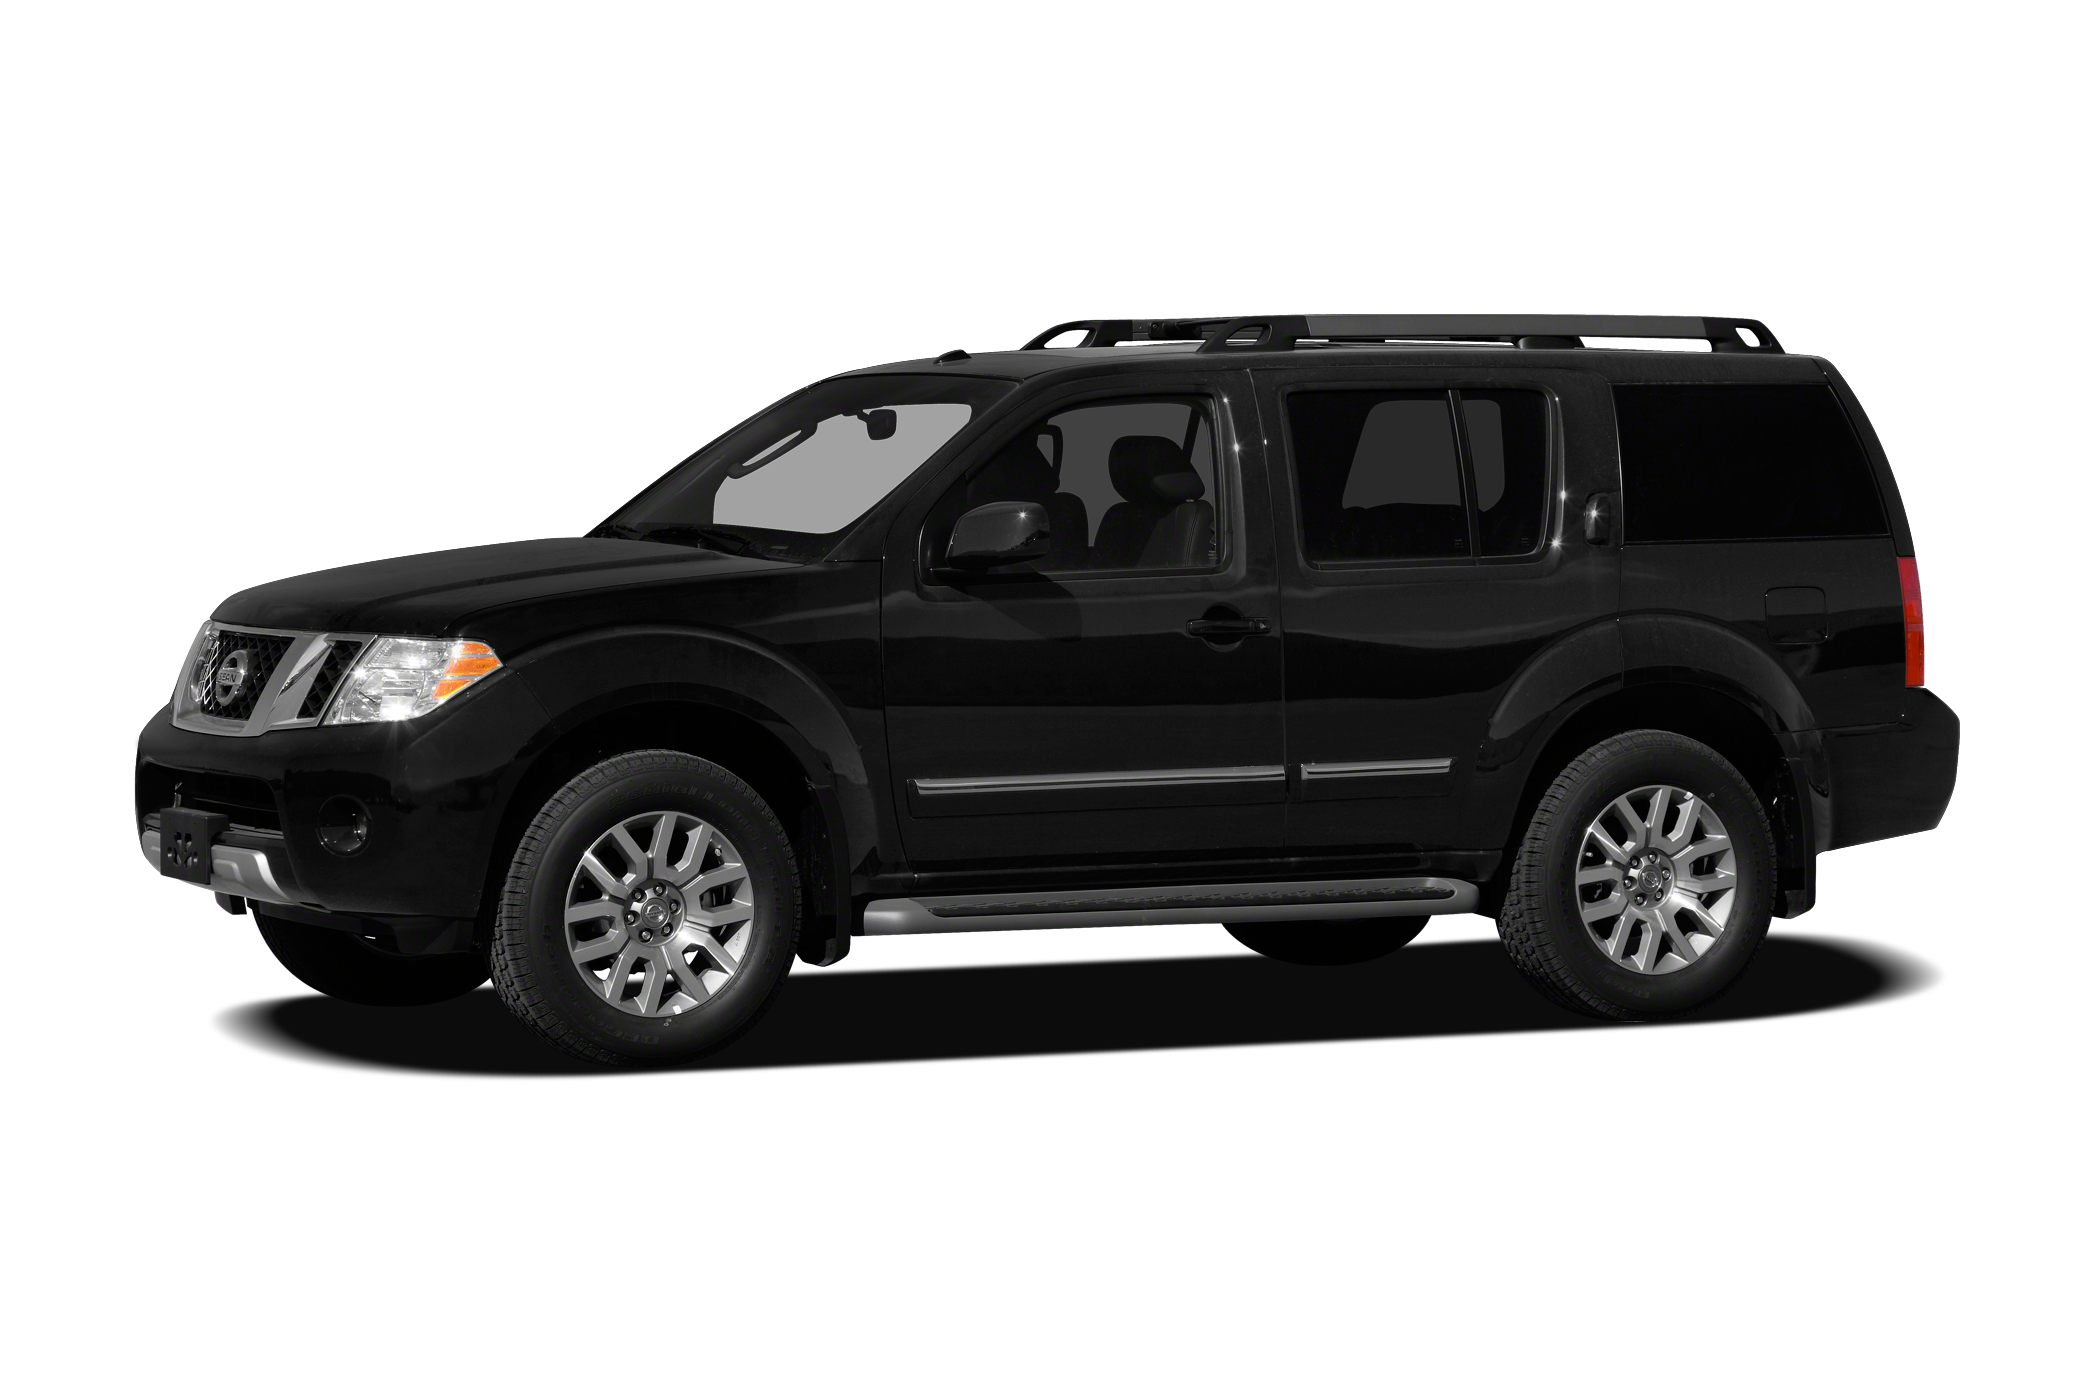 2011 Nissan Pathfinder S SUV for sale in Georgetown for $16,999 with 84,101 miles.